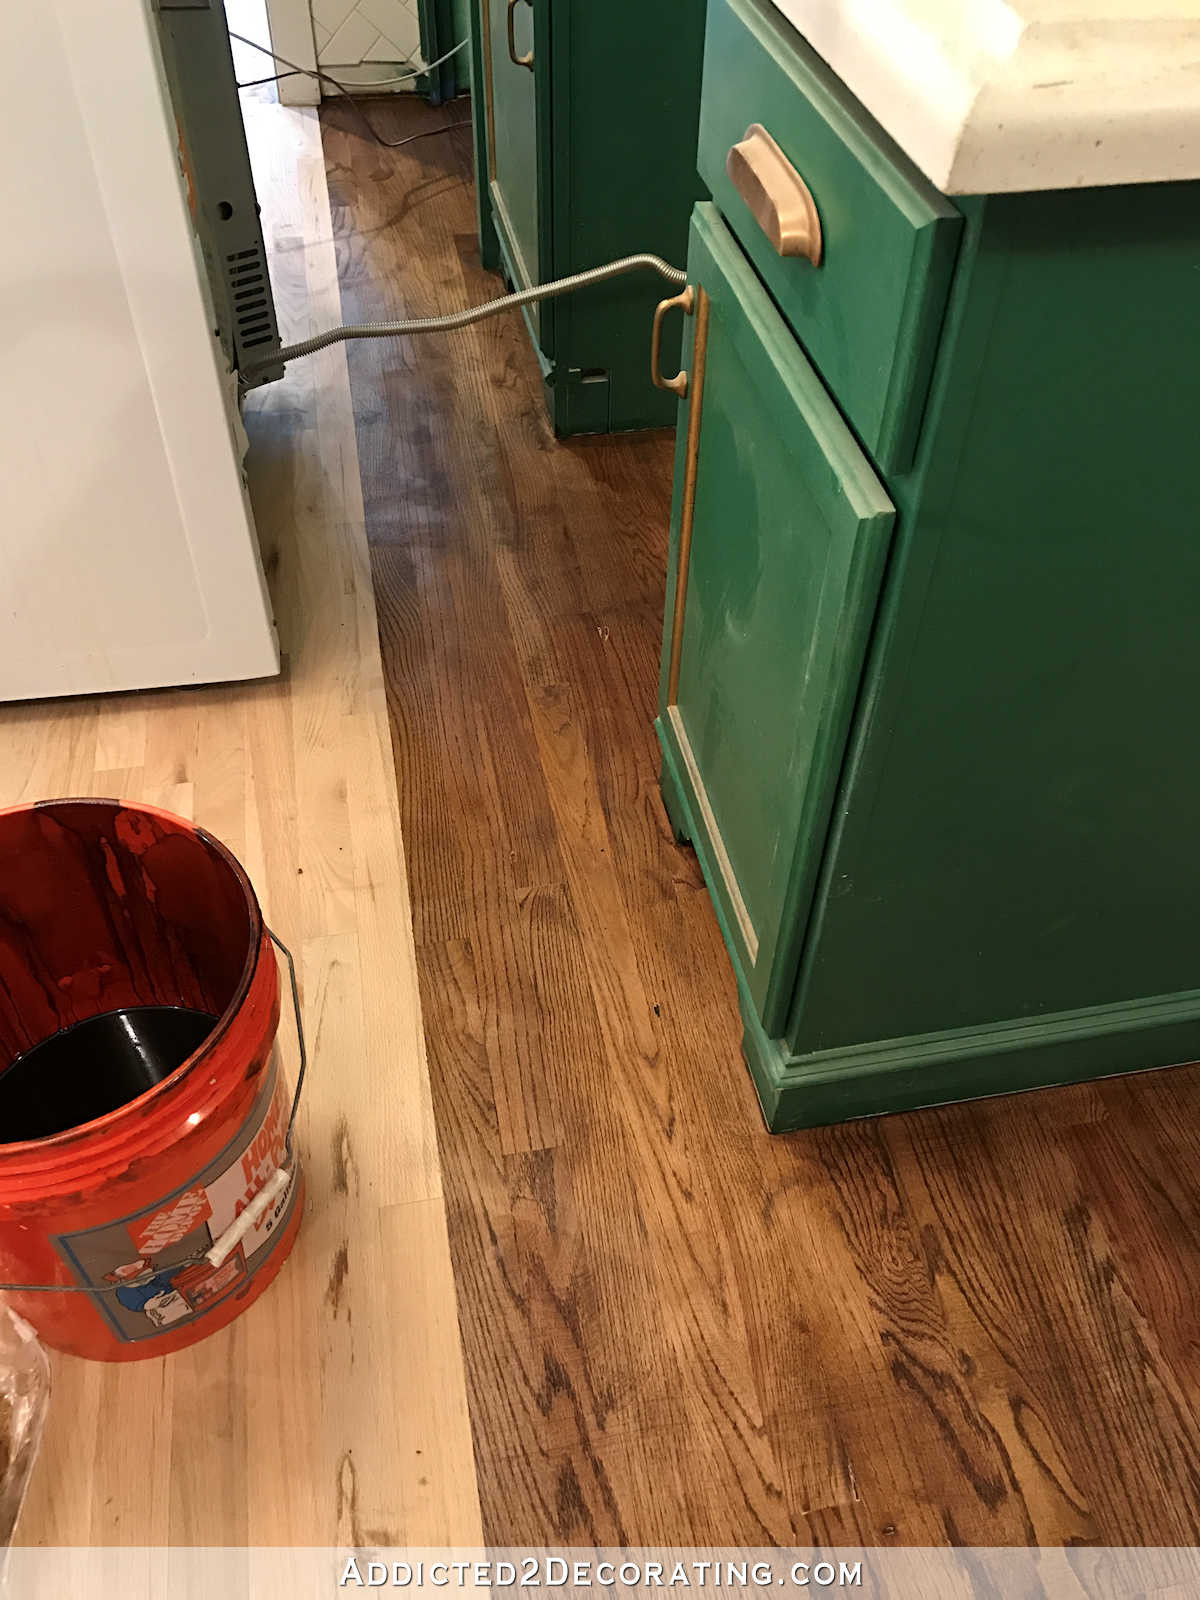 how much does staining hardwood floors cost of adventures in staining my red oak hardwood floors products process within staining red oak hardwood floors 10 stain on kitchen floor behind stove and refrigerator